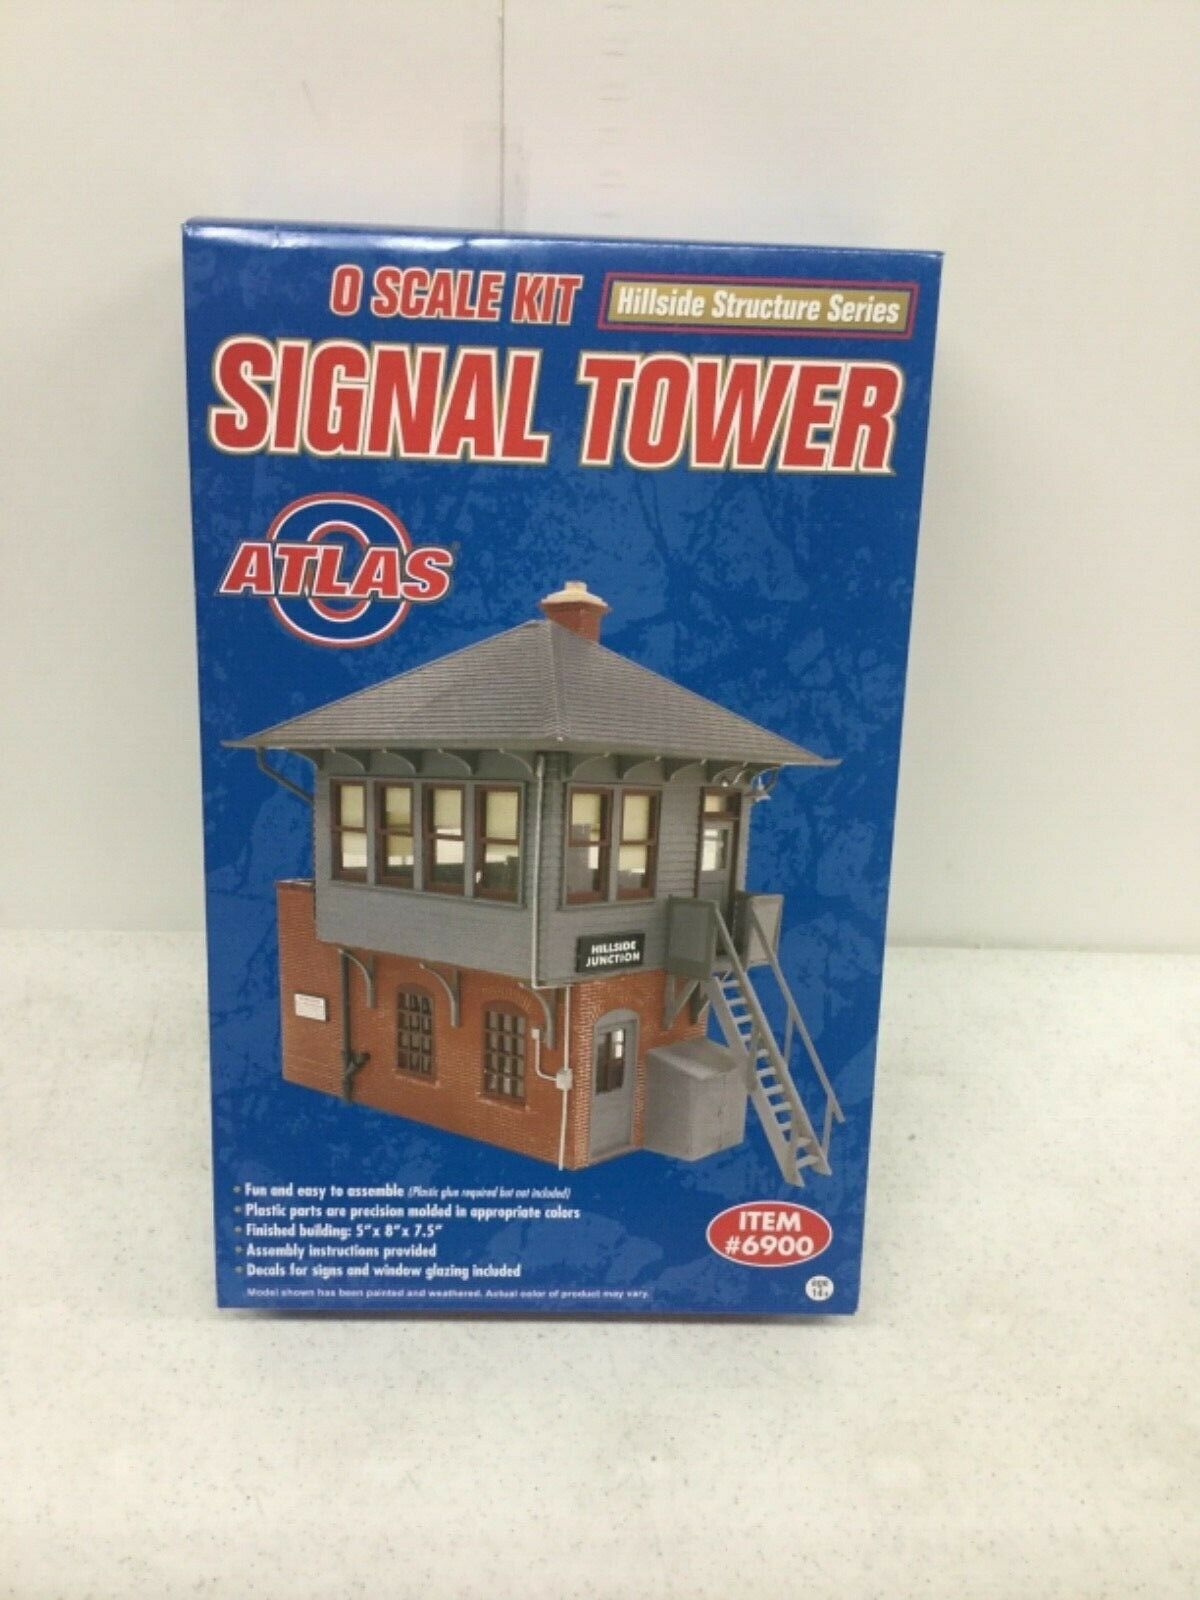 Atlas Hillside Structure Series Signal Tower Kit O Scale Unopened Box